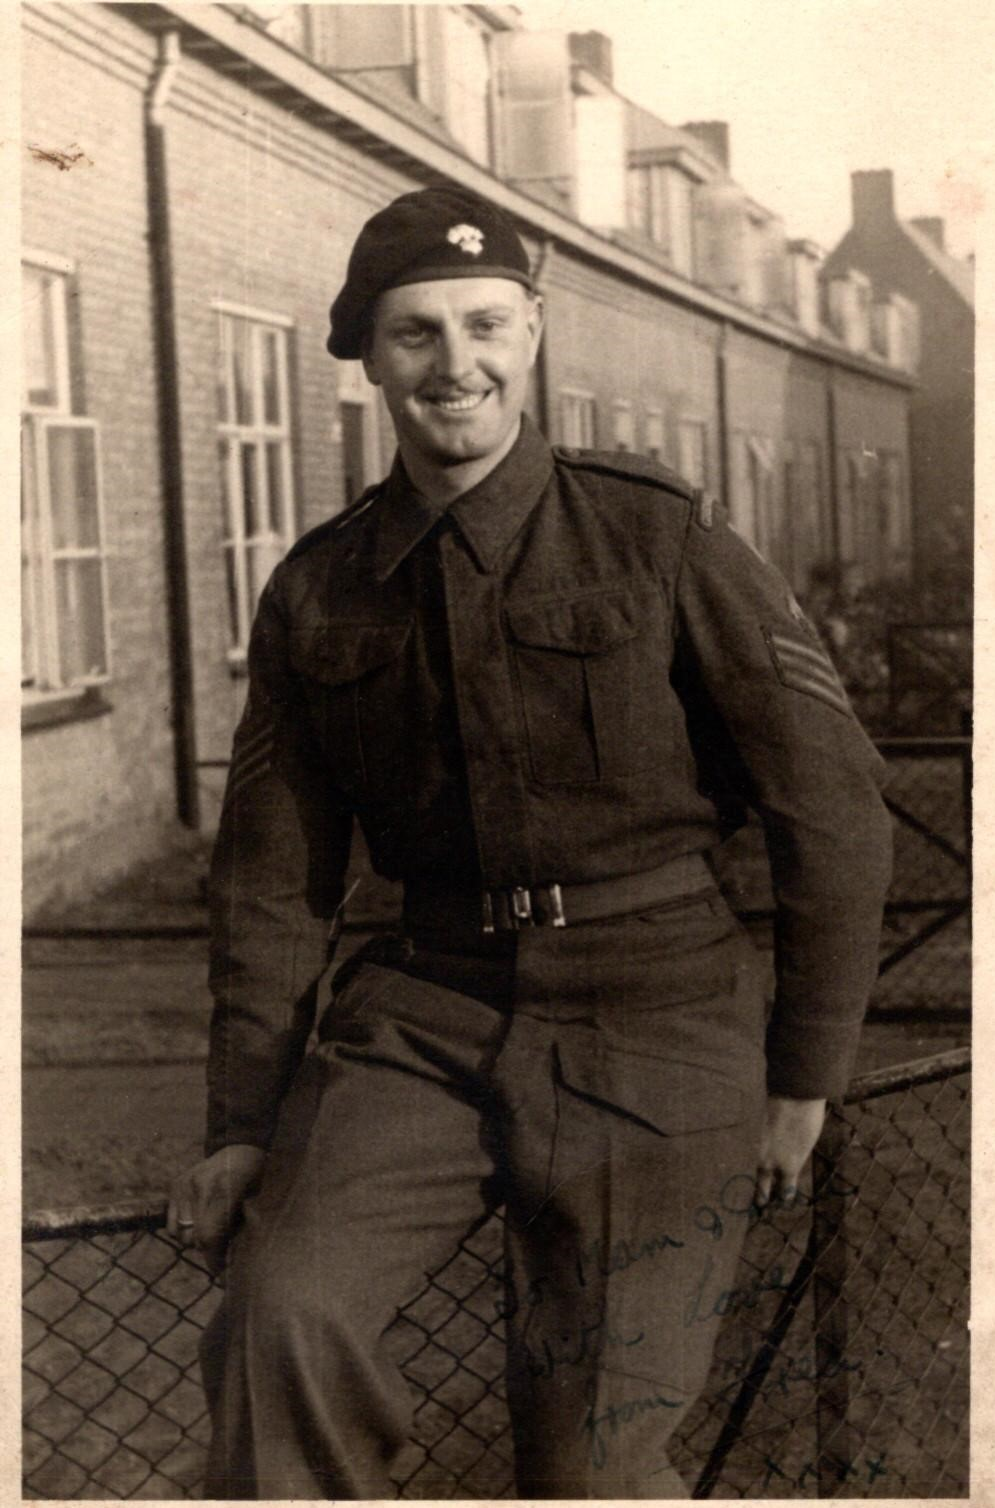 L/sgt Fred Higgin 4th Battalion Grenadier Guards.